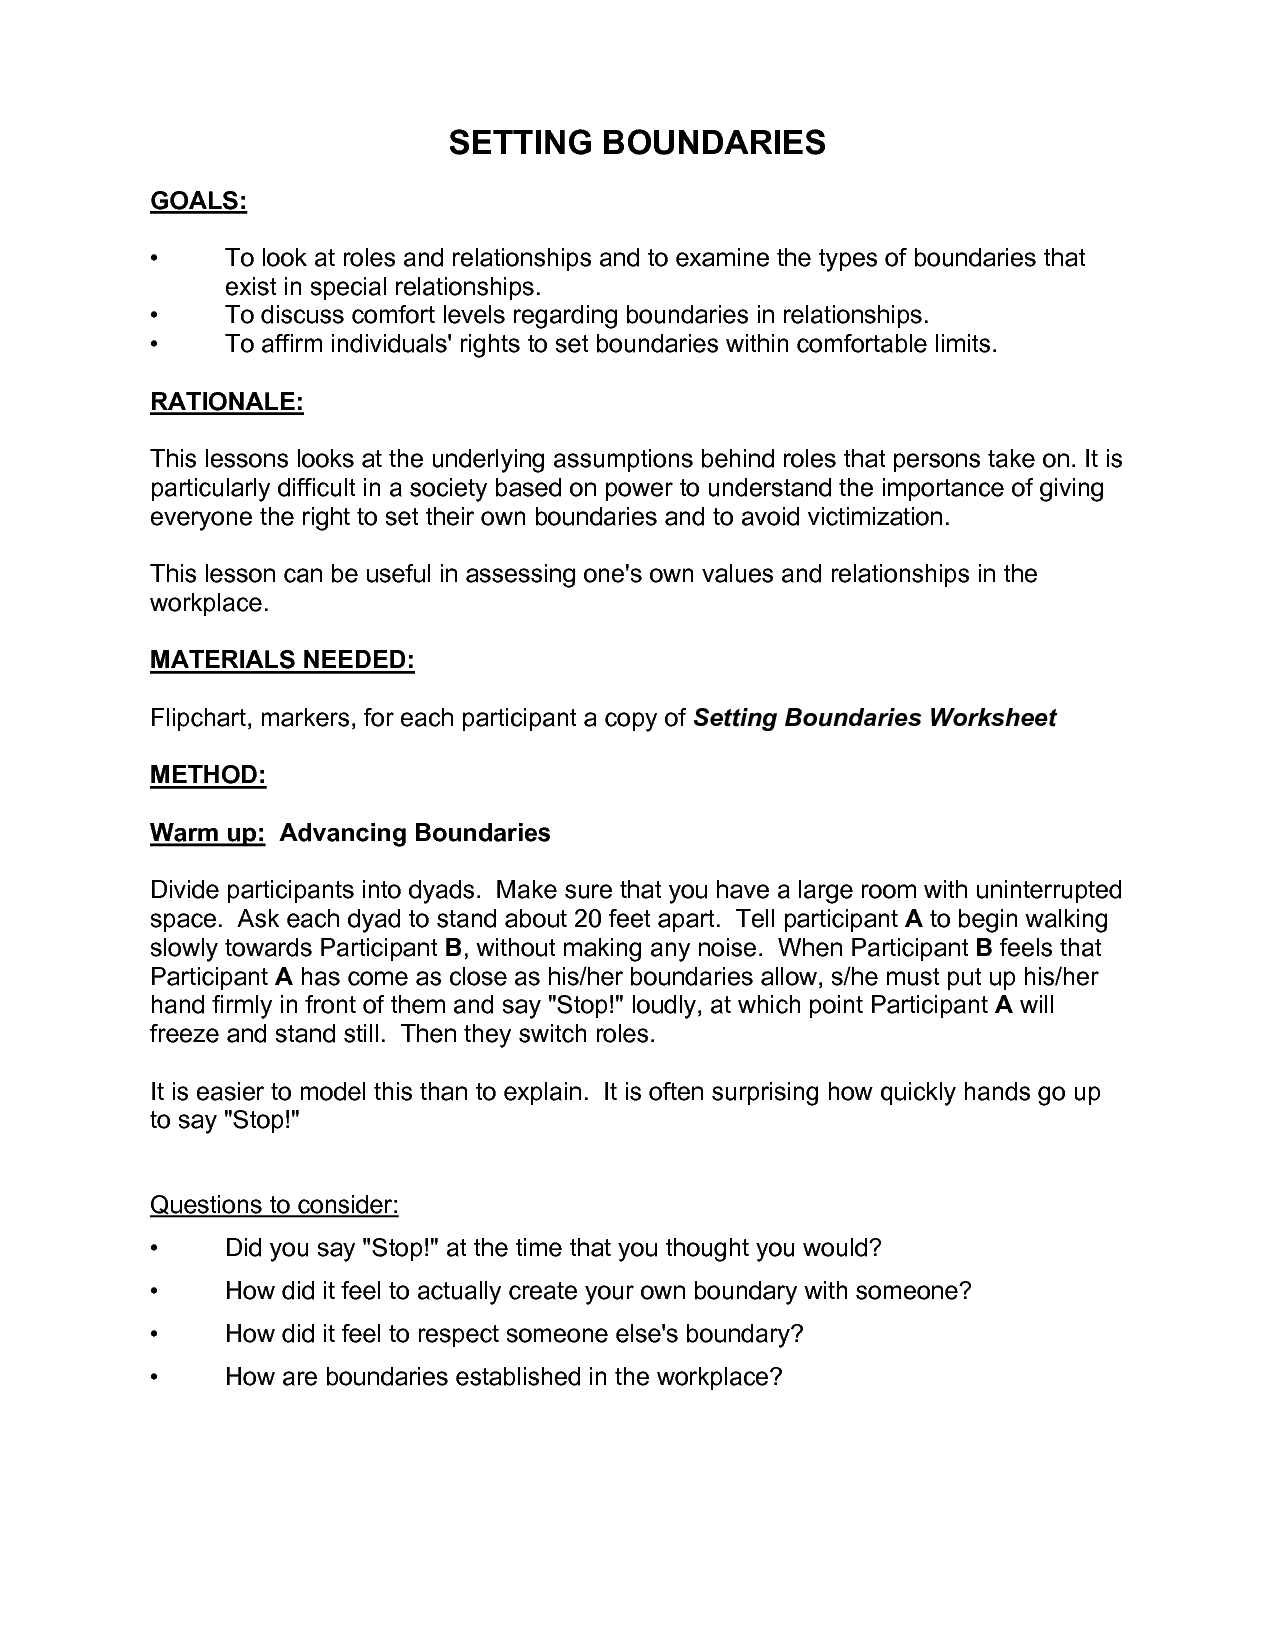 Worksheet Healthy Boundaries Worksheet the ojays presents and relationships on pinterest healthyboundariesworksheet setting boundaries worksheet